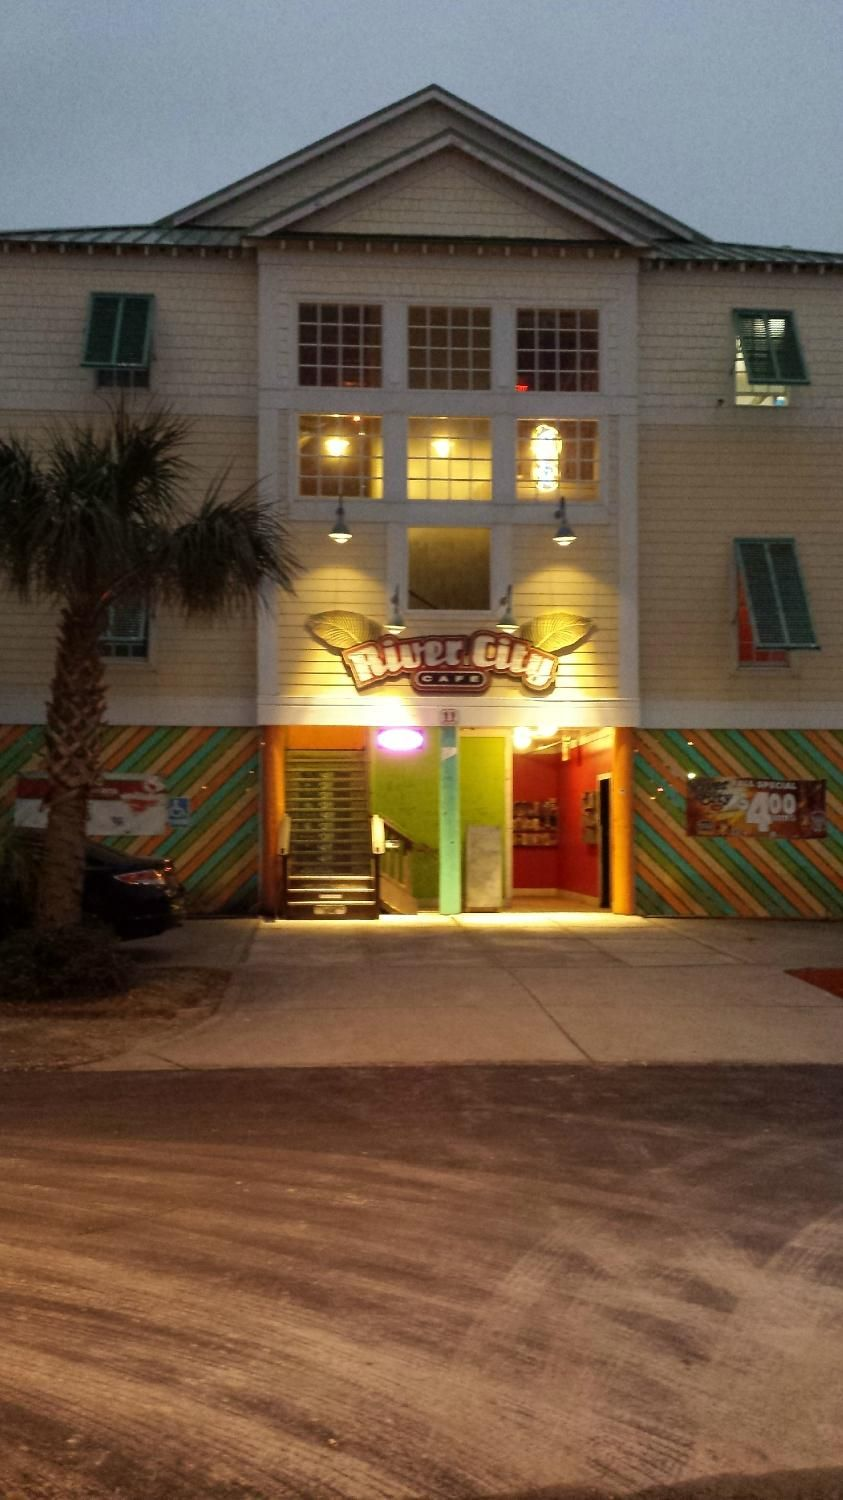 River City Cafe Surfside Beach Surfside Beach Surfside Beach South Carolina Surfside